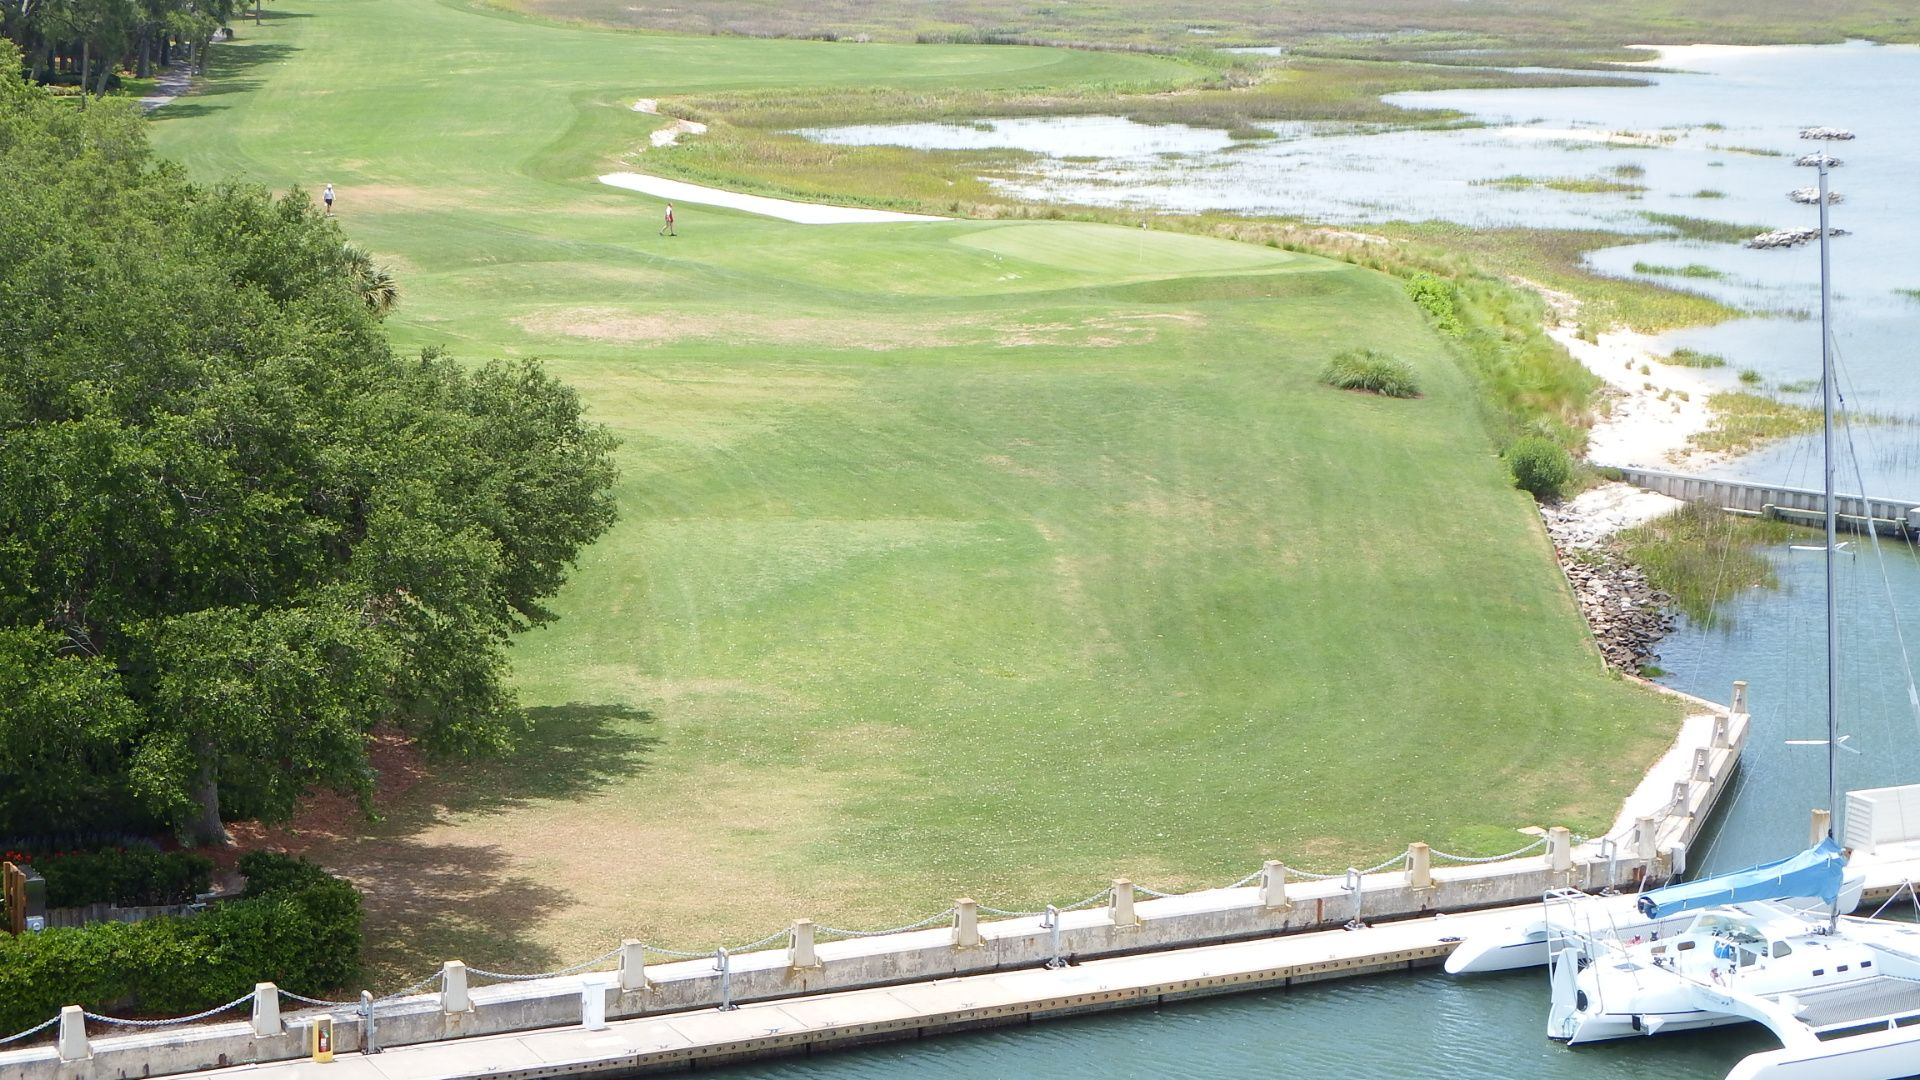 Hilton Head, SC..18th hole view from the lighthouse